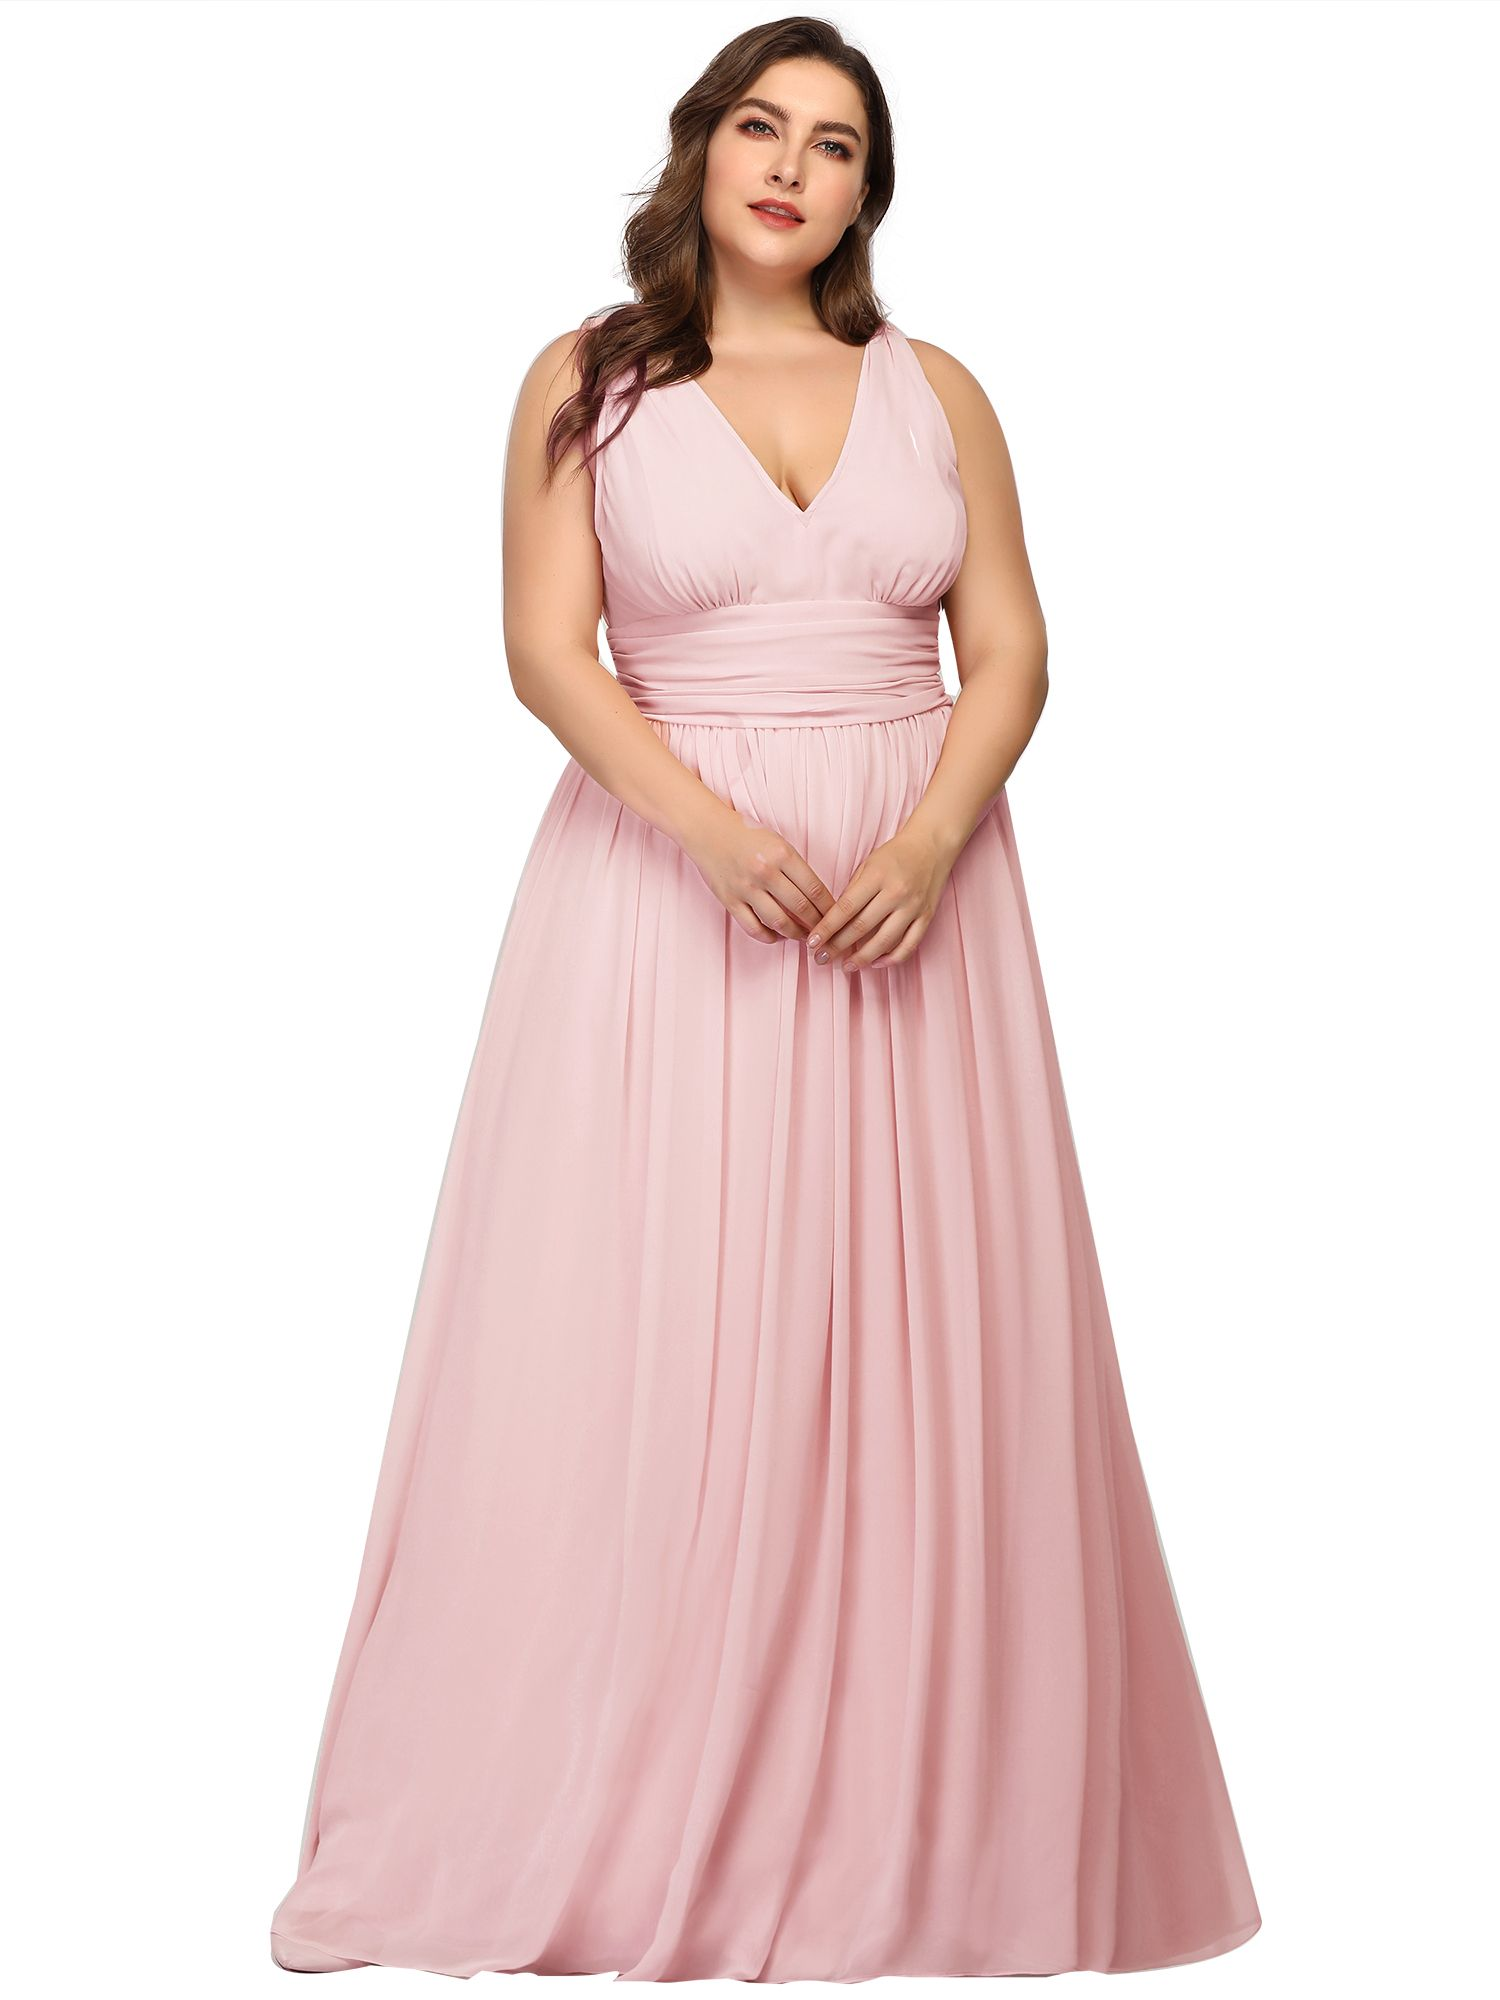 Ever Pretty Ever Pretty Womens Plus Size Long Evening Dresses For Women 90162 Pink Us22 Walmart Com In 2021 Bridesmaid Dresses Plus Size Plus Size Dresses Maxi Dress Party [ 2000 x 1500 Pixel ]